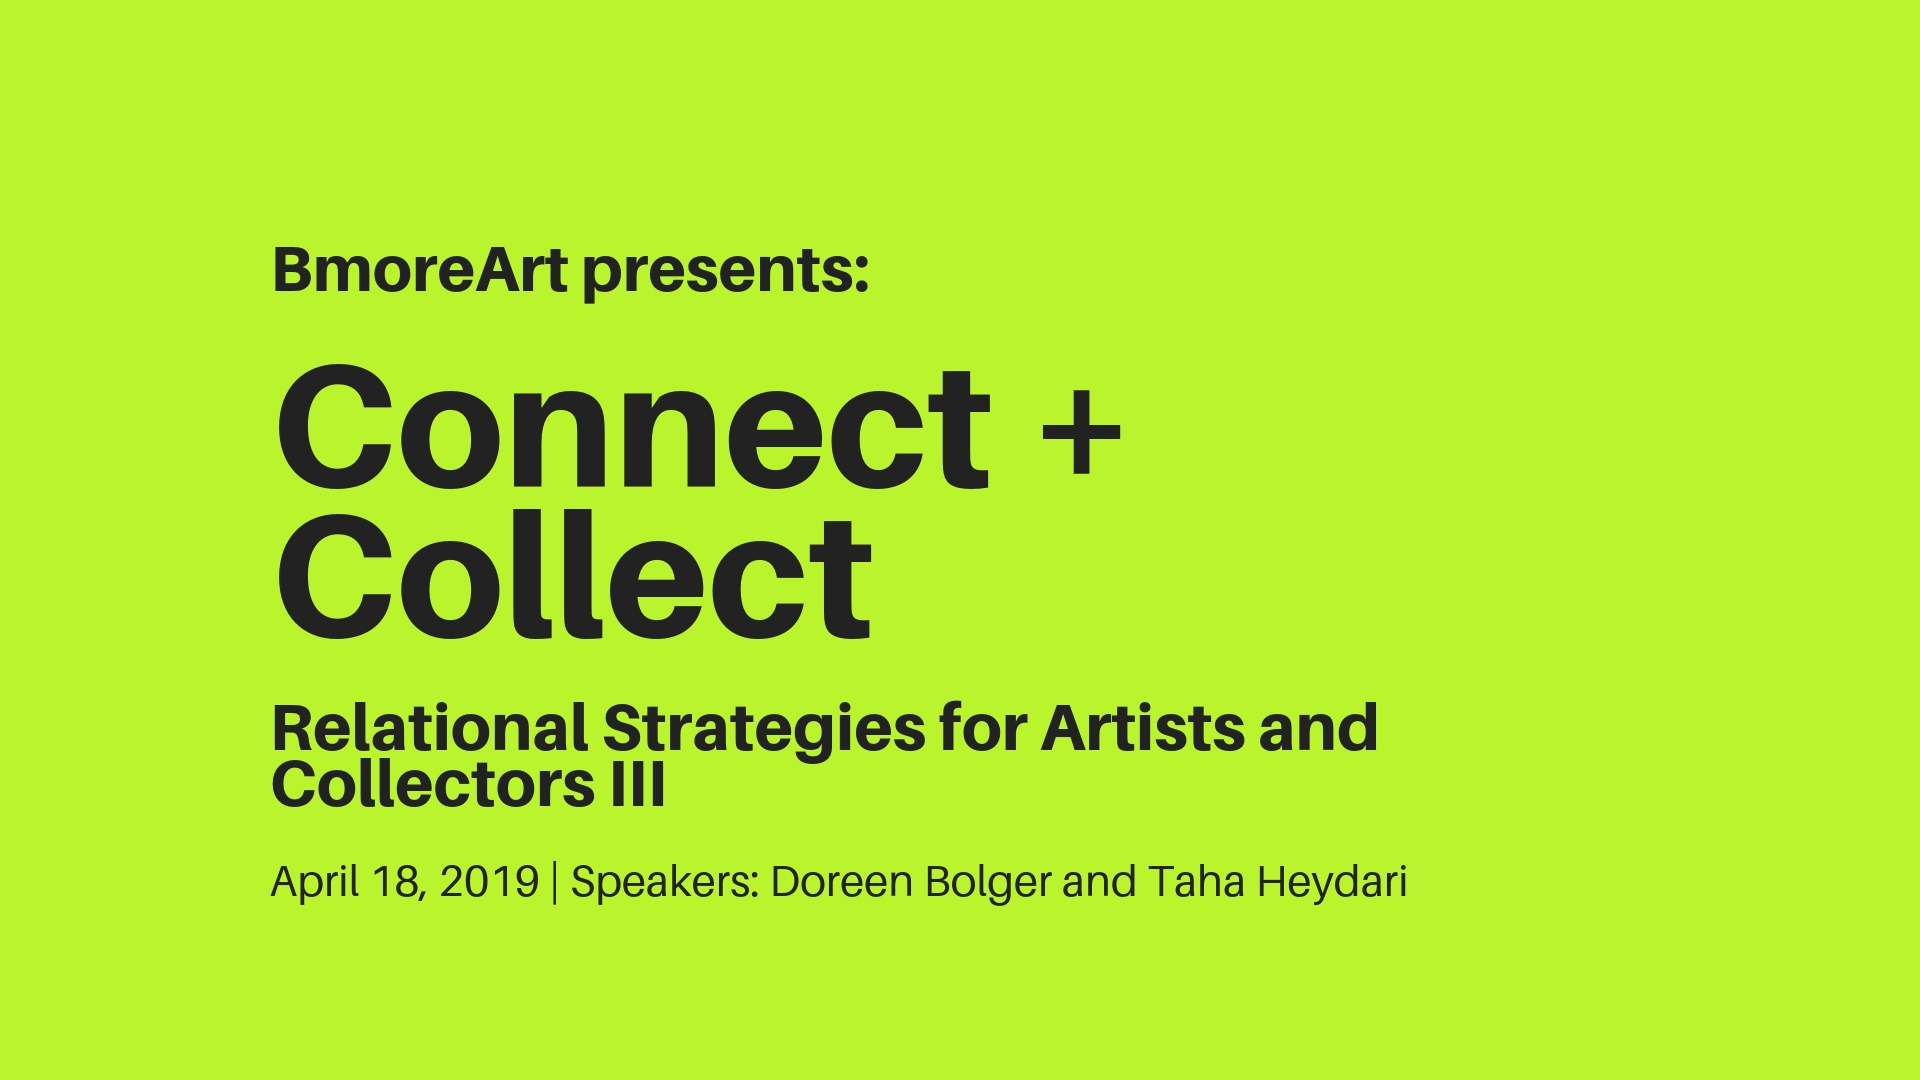 Connect + Collect Part III: April 18